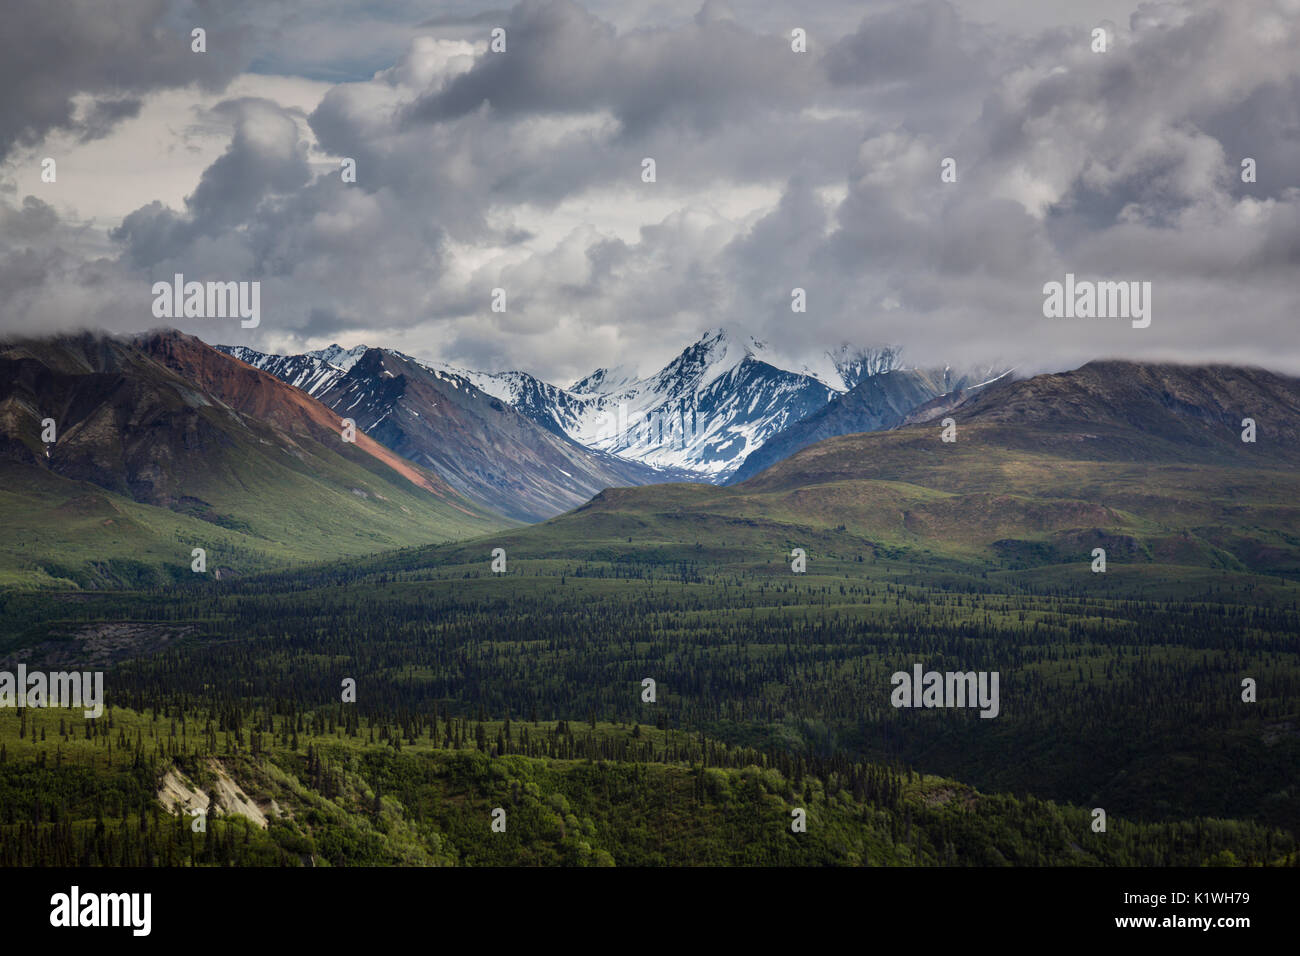 Chugach Mountains, Glenn Highway, Alaska, USA - Stock Image